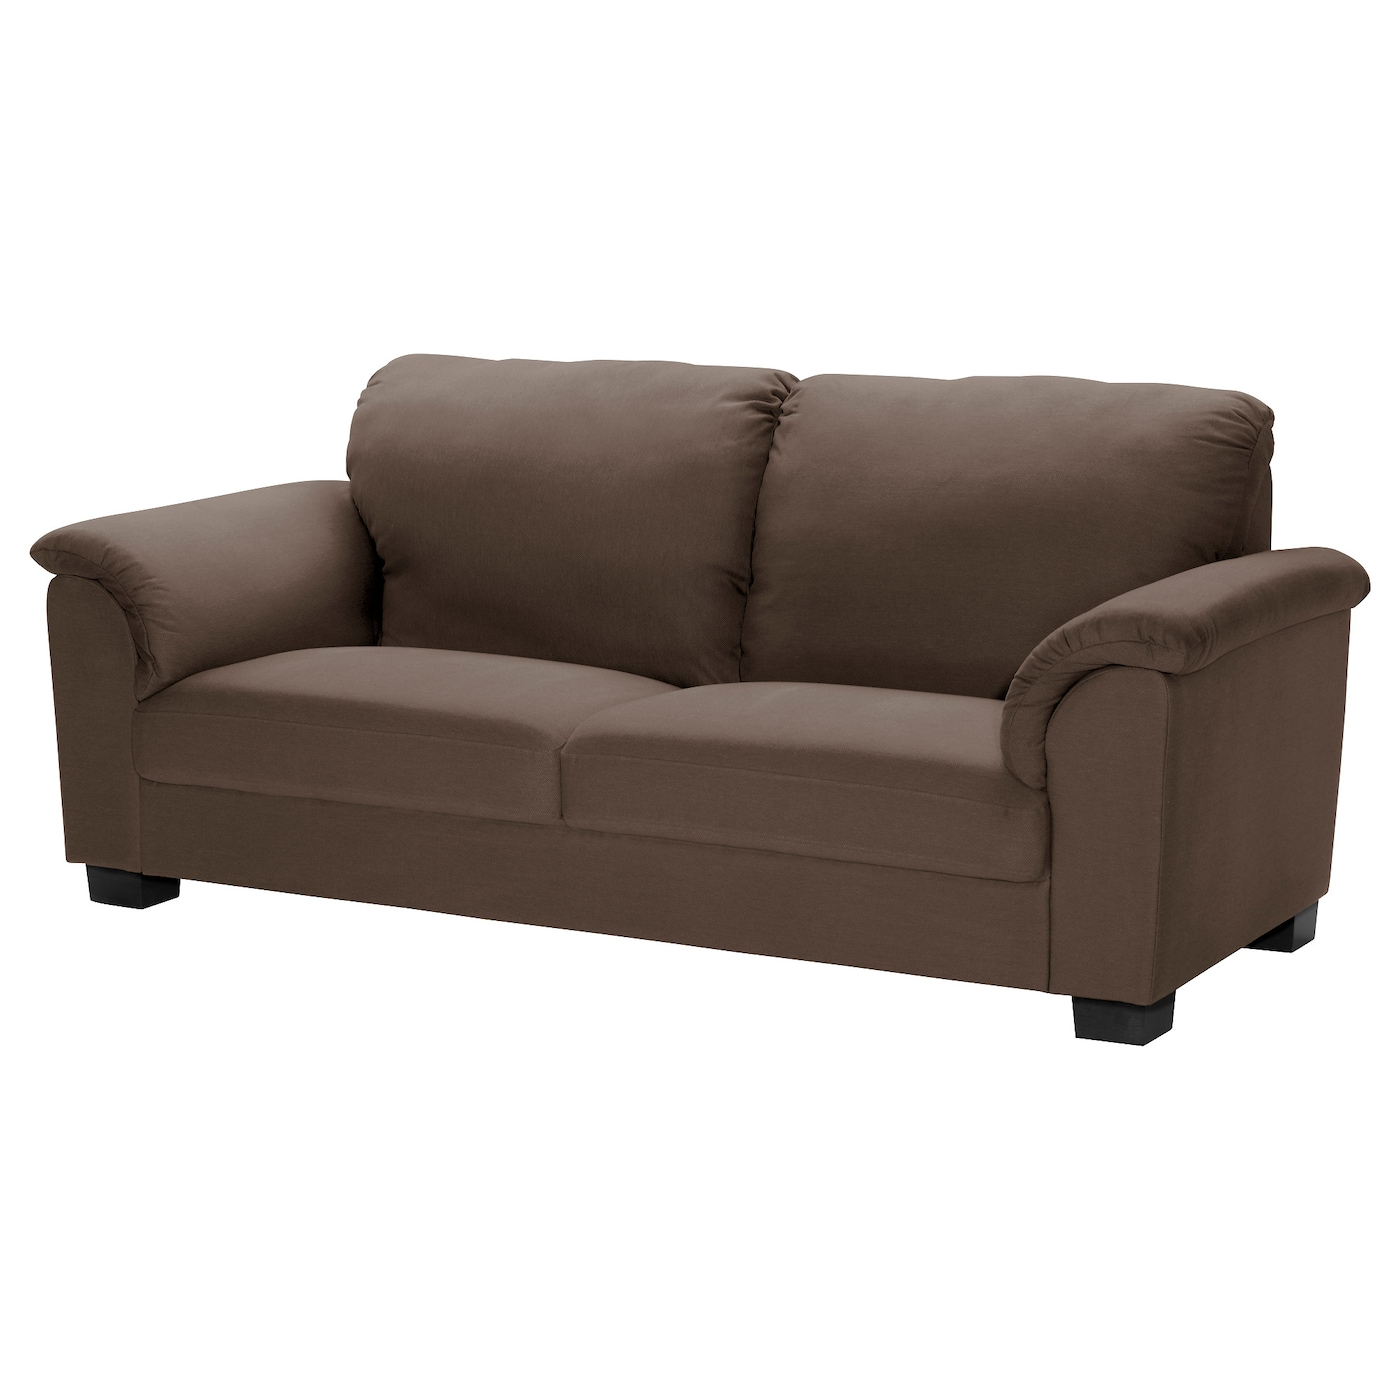 Tidafors three seat sofa dansbo medium brown ikea for Sofa cama modernos